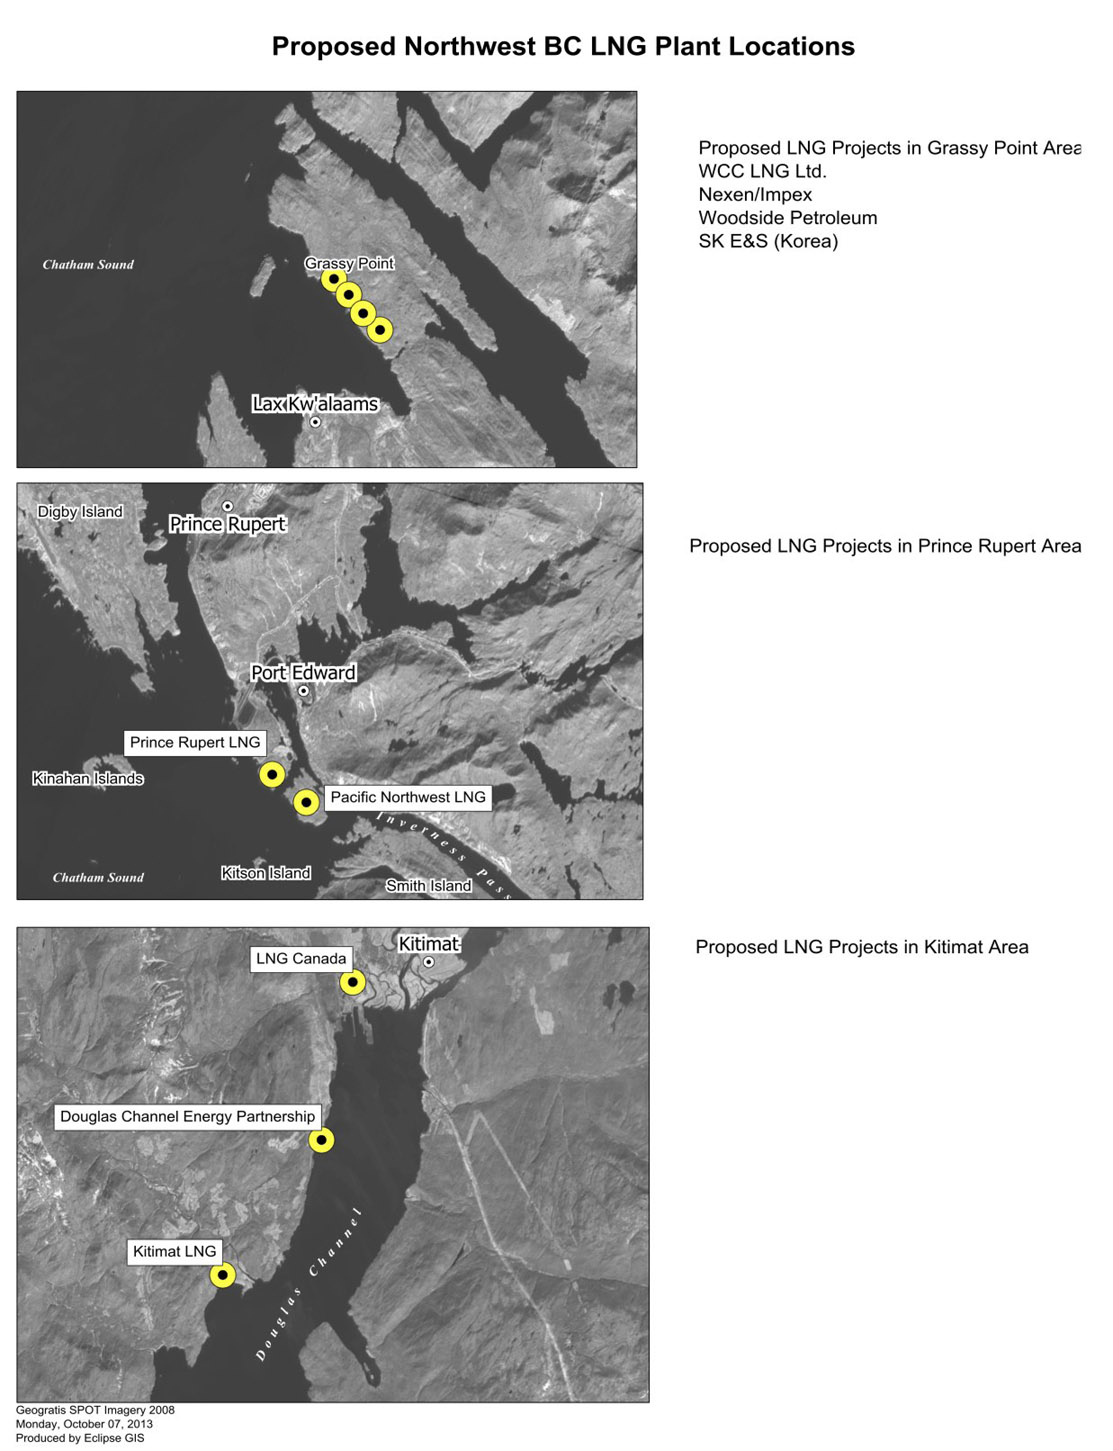 NWBC-Proposed-LNG-Plant-Sites-October-2013